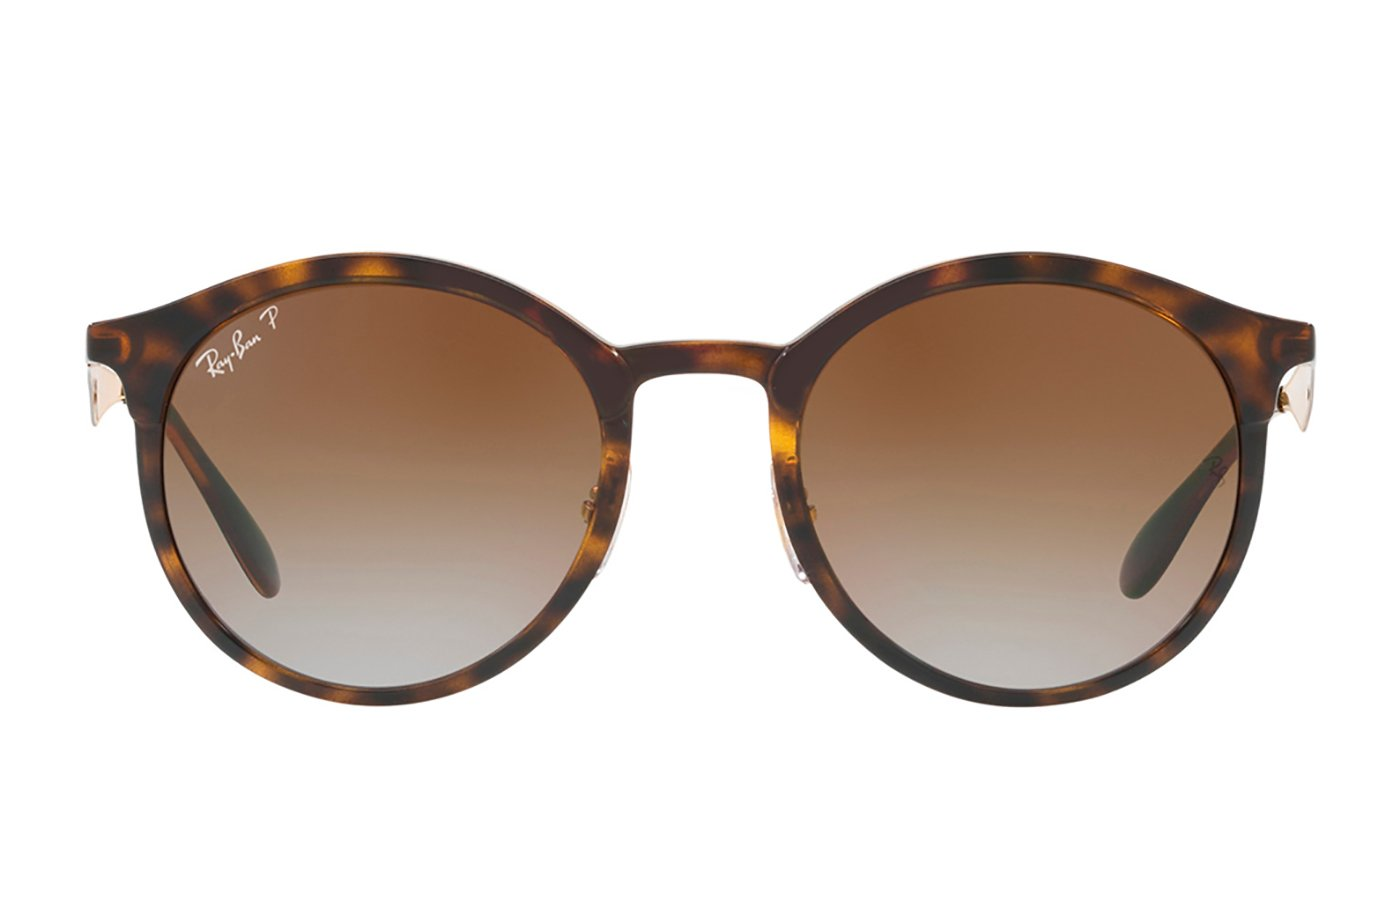 RAY-BAN EMMA LIGHT HAVANA 0RB4277 51 710/T5